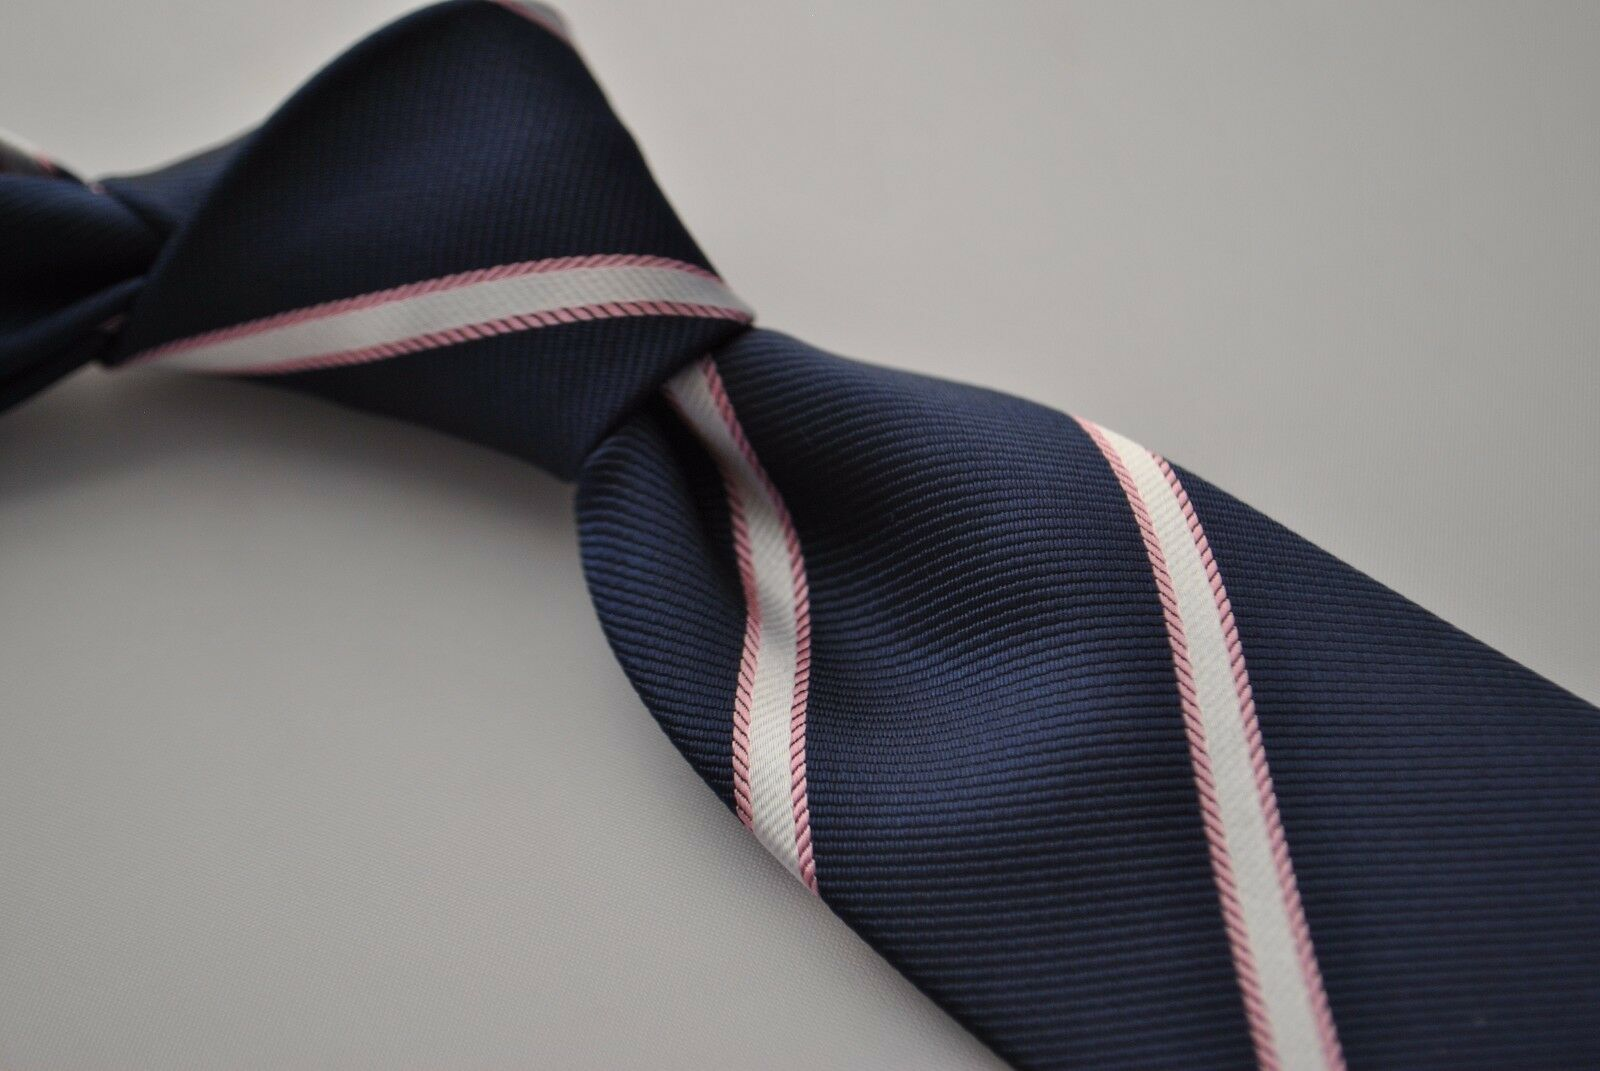 Frederick Thomas navy tie with white and pink stripes FT1756